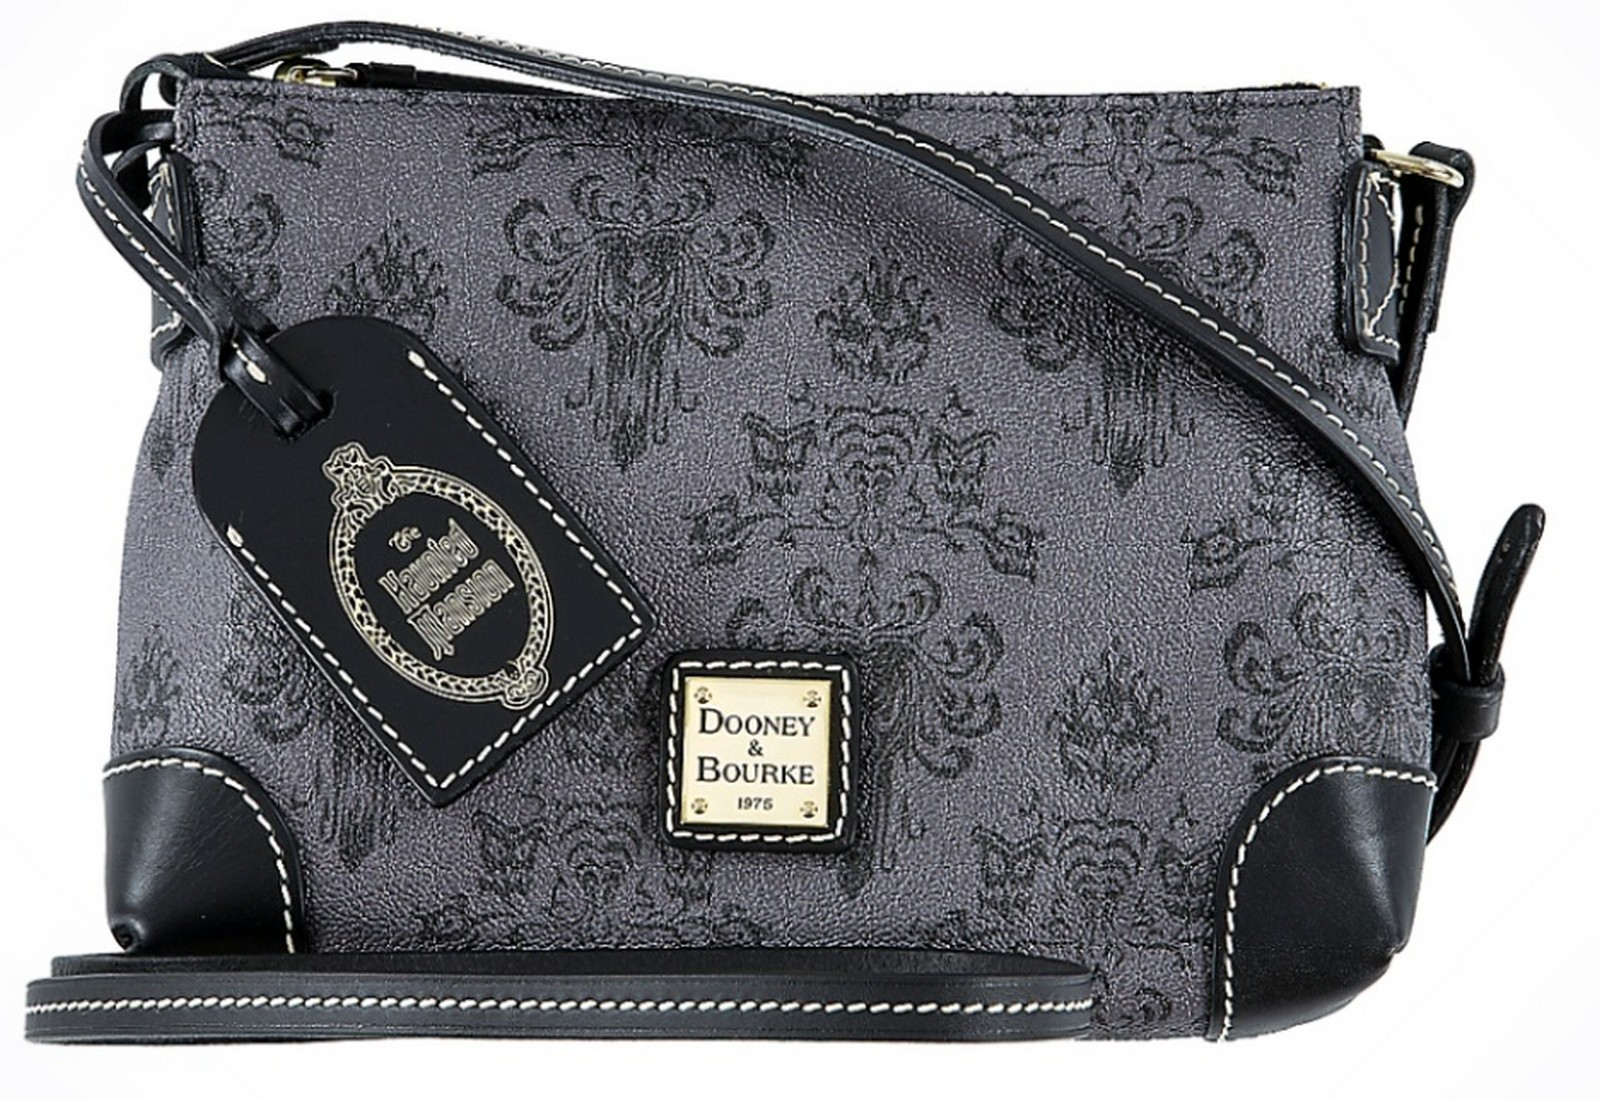 Dooney & Bourke - Disney Haunted Mansion Wallpaper Crossbody Pouchette Handbag © Dizdude.com